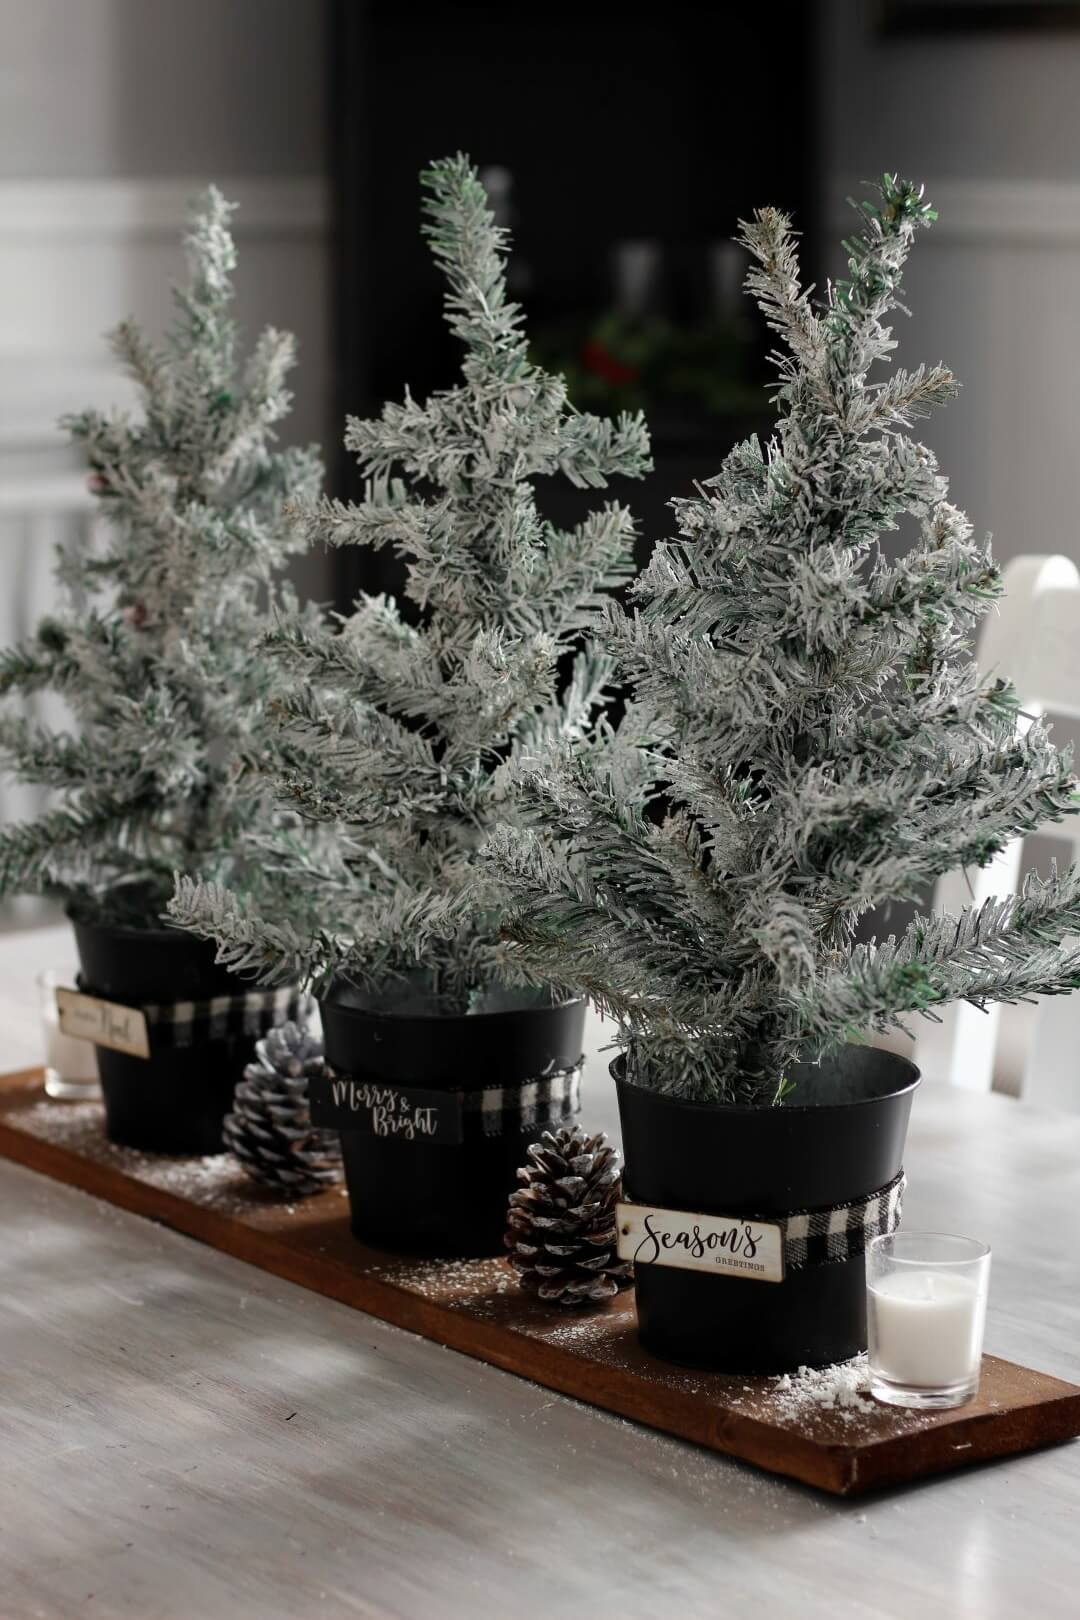 Christmas Centerpiece With Mini Rustic Trees